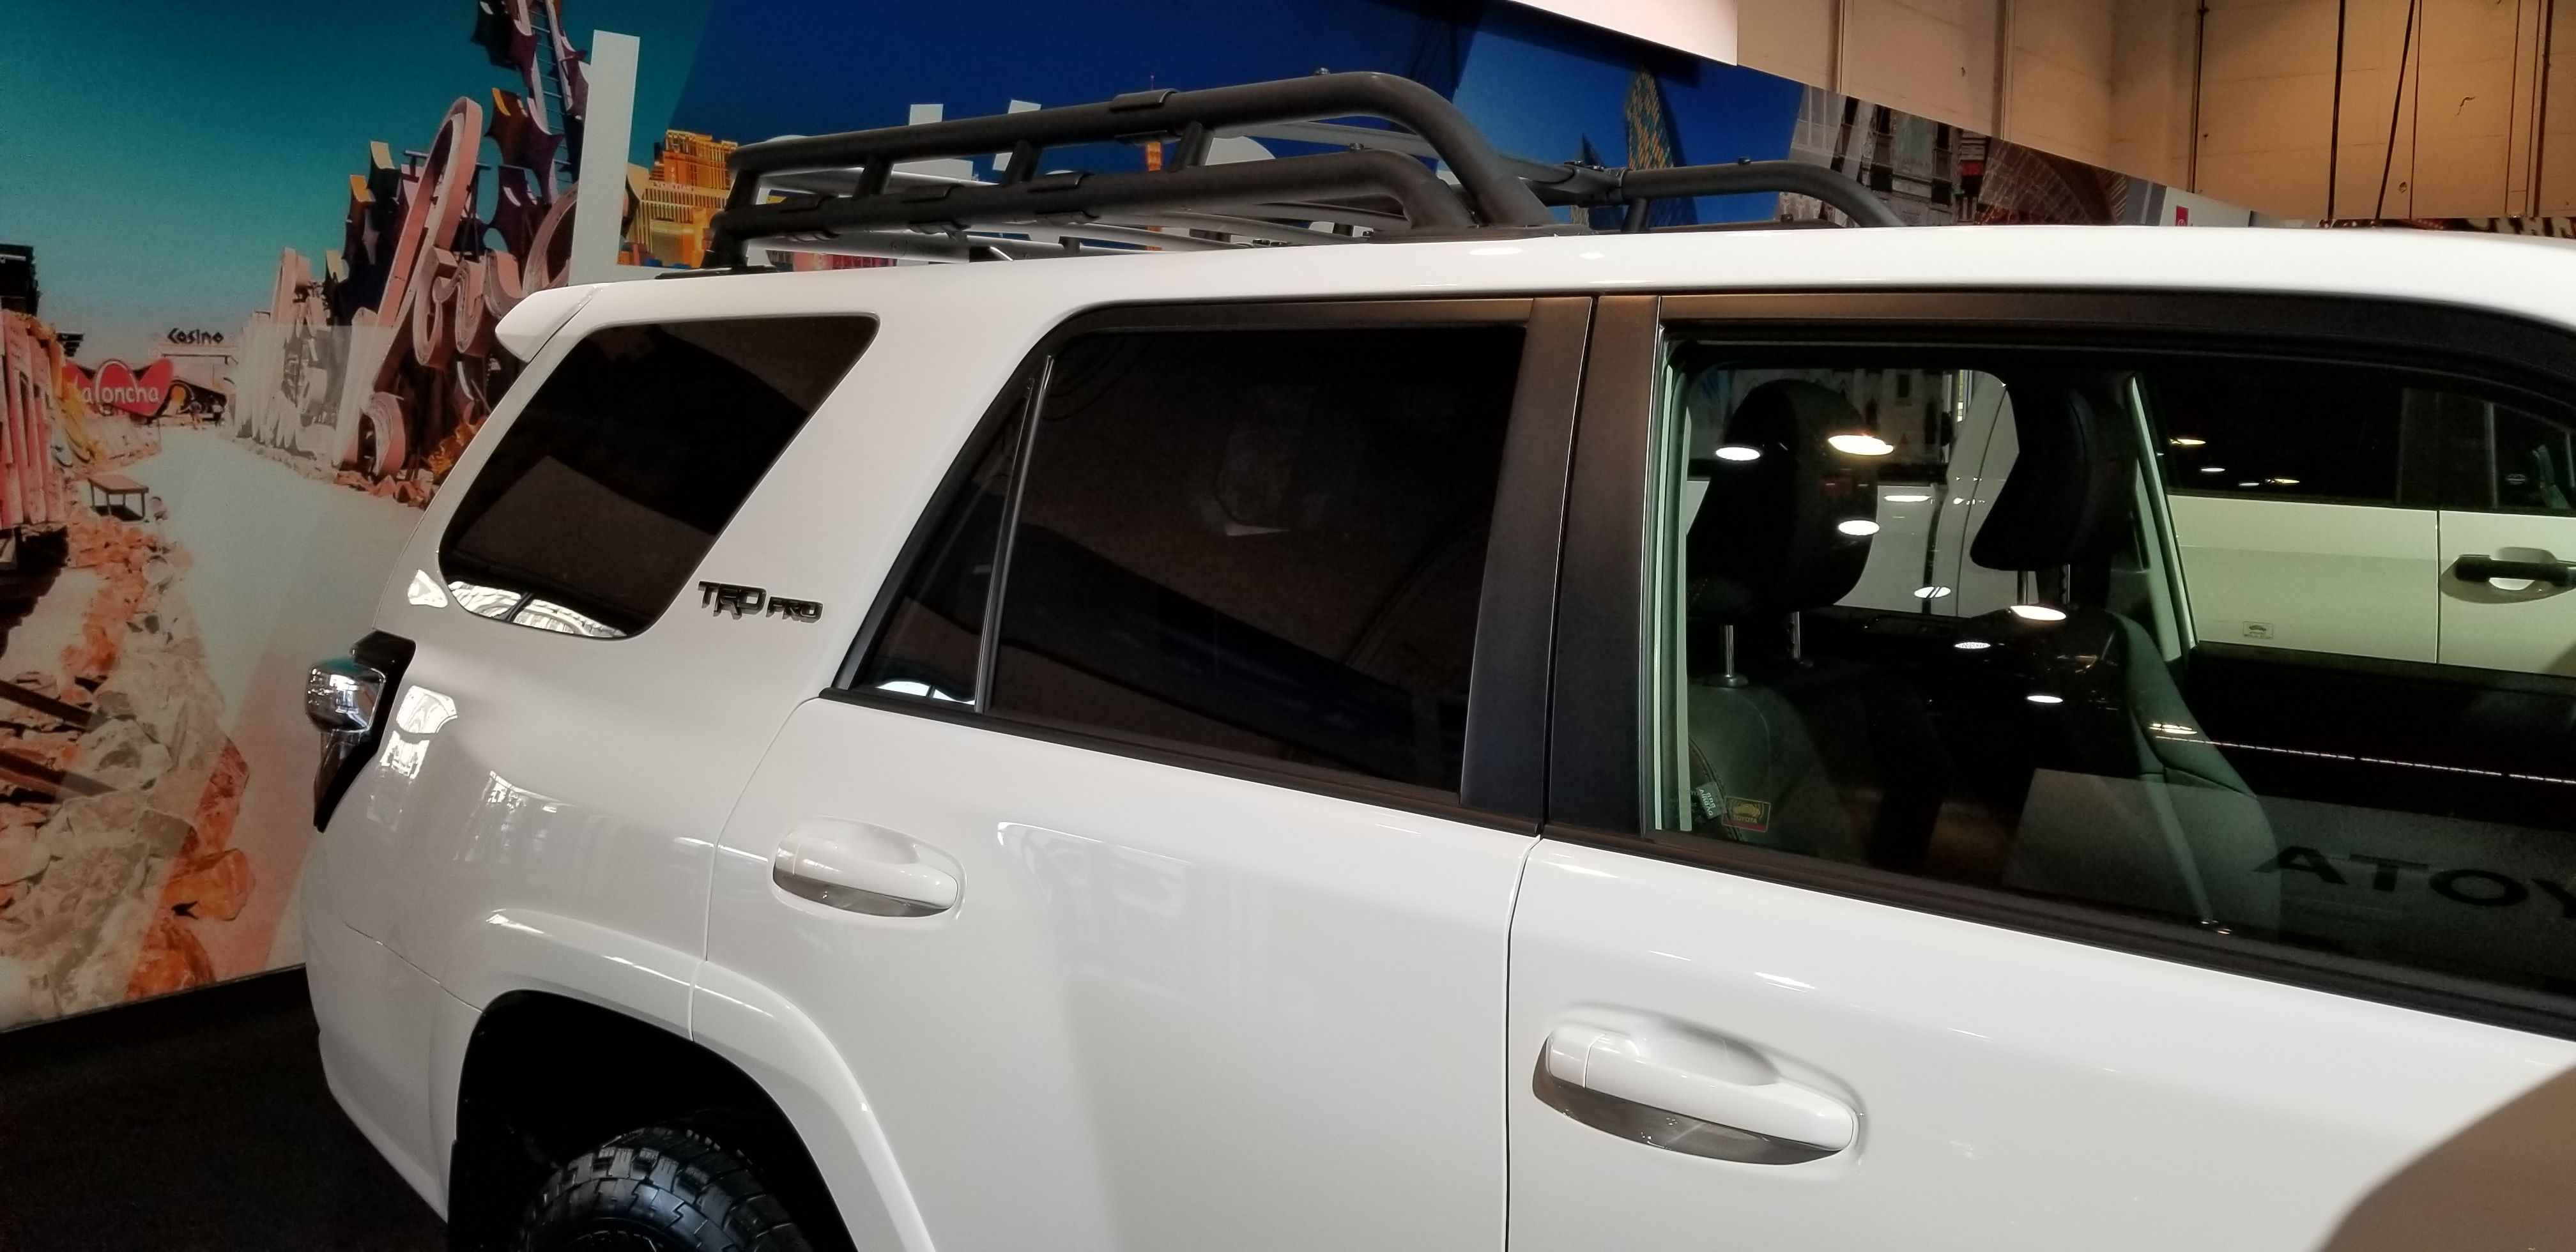 This 4runner Is Sporting A Roof Rack More Often Worn By It S